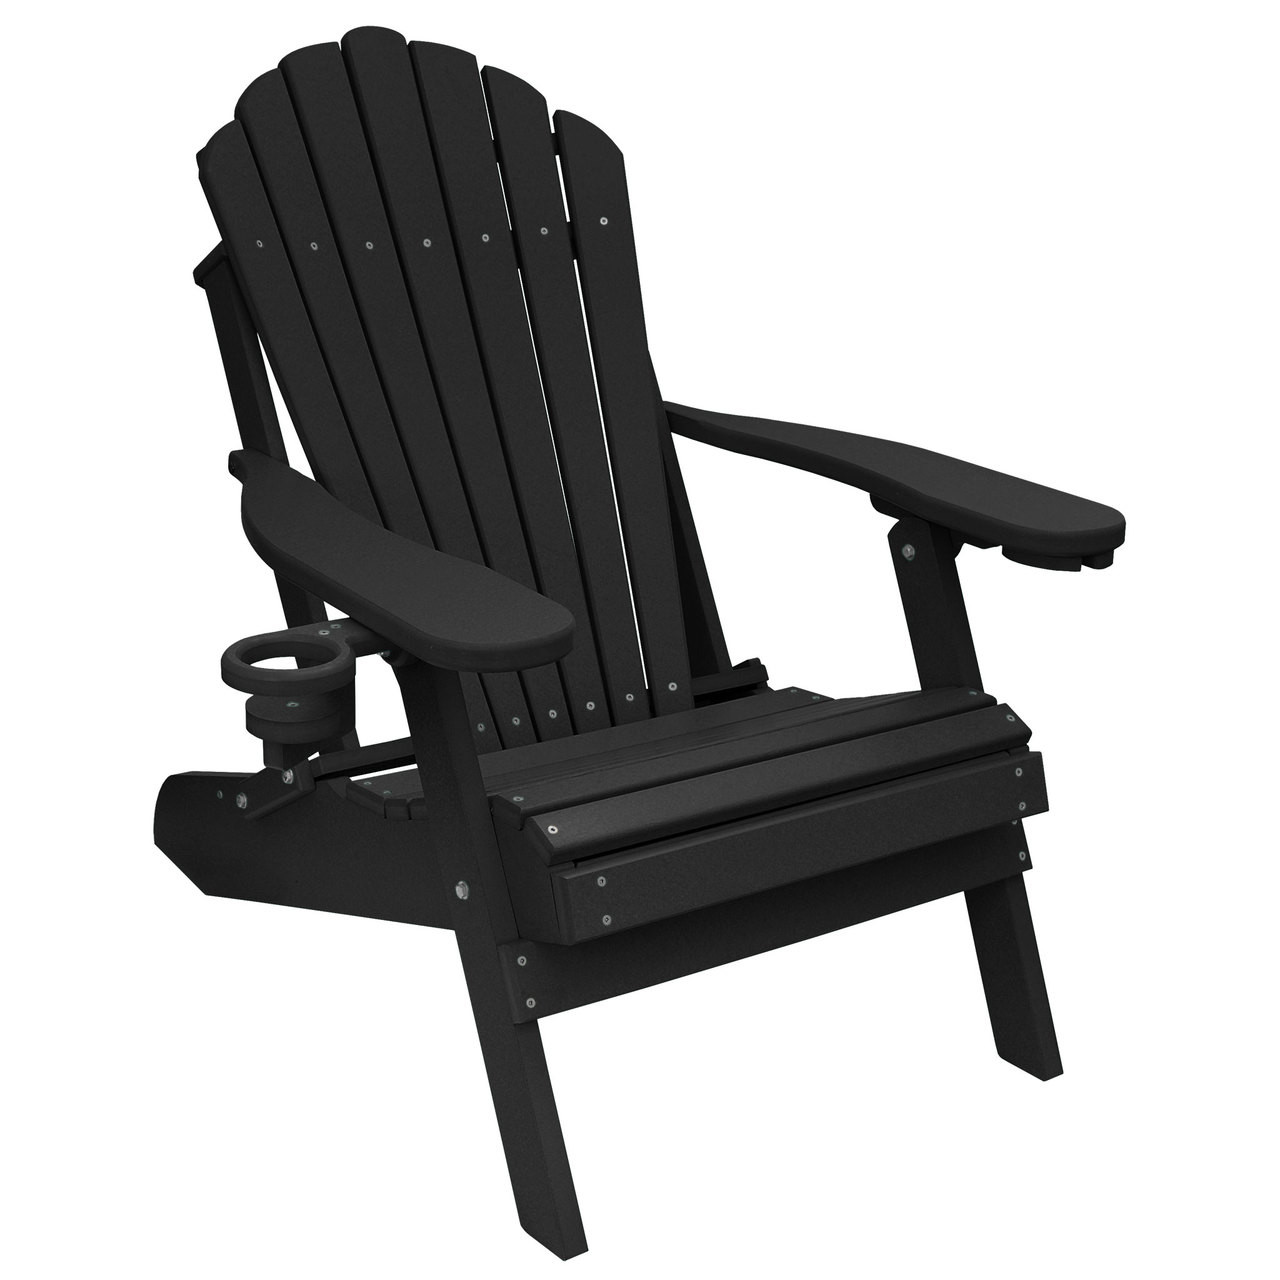 Deluxe Oversized Poly Lumber Folding Adirondack Chair With